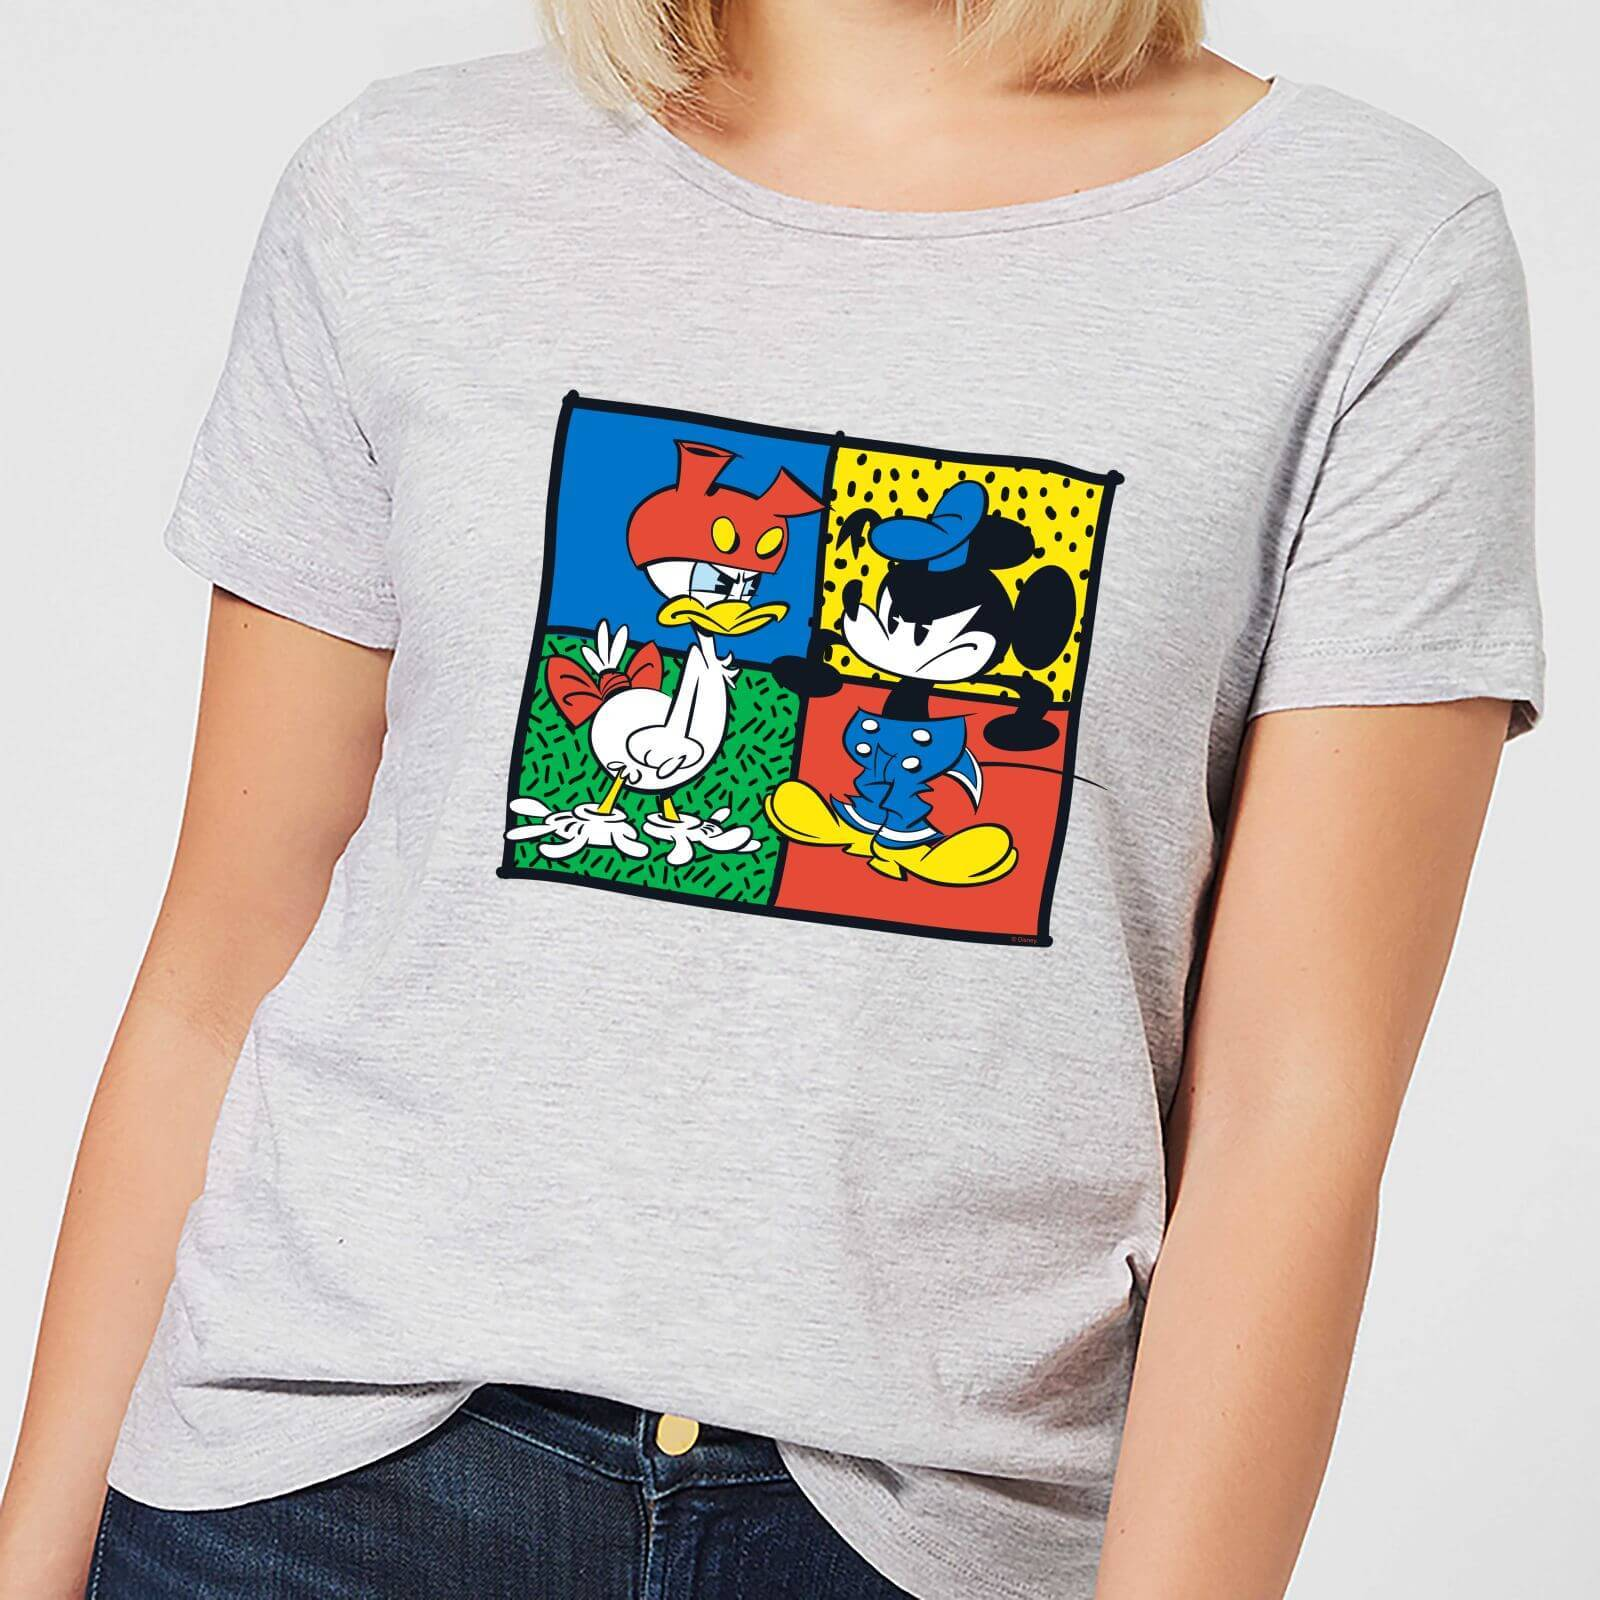 Disney Mickey And Donald Clothes Swap Women's T-Shirt - Grey - XL - Grey